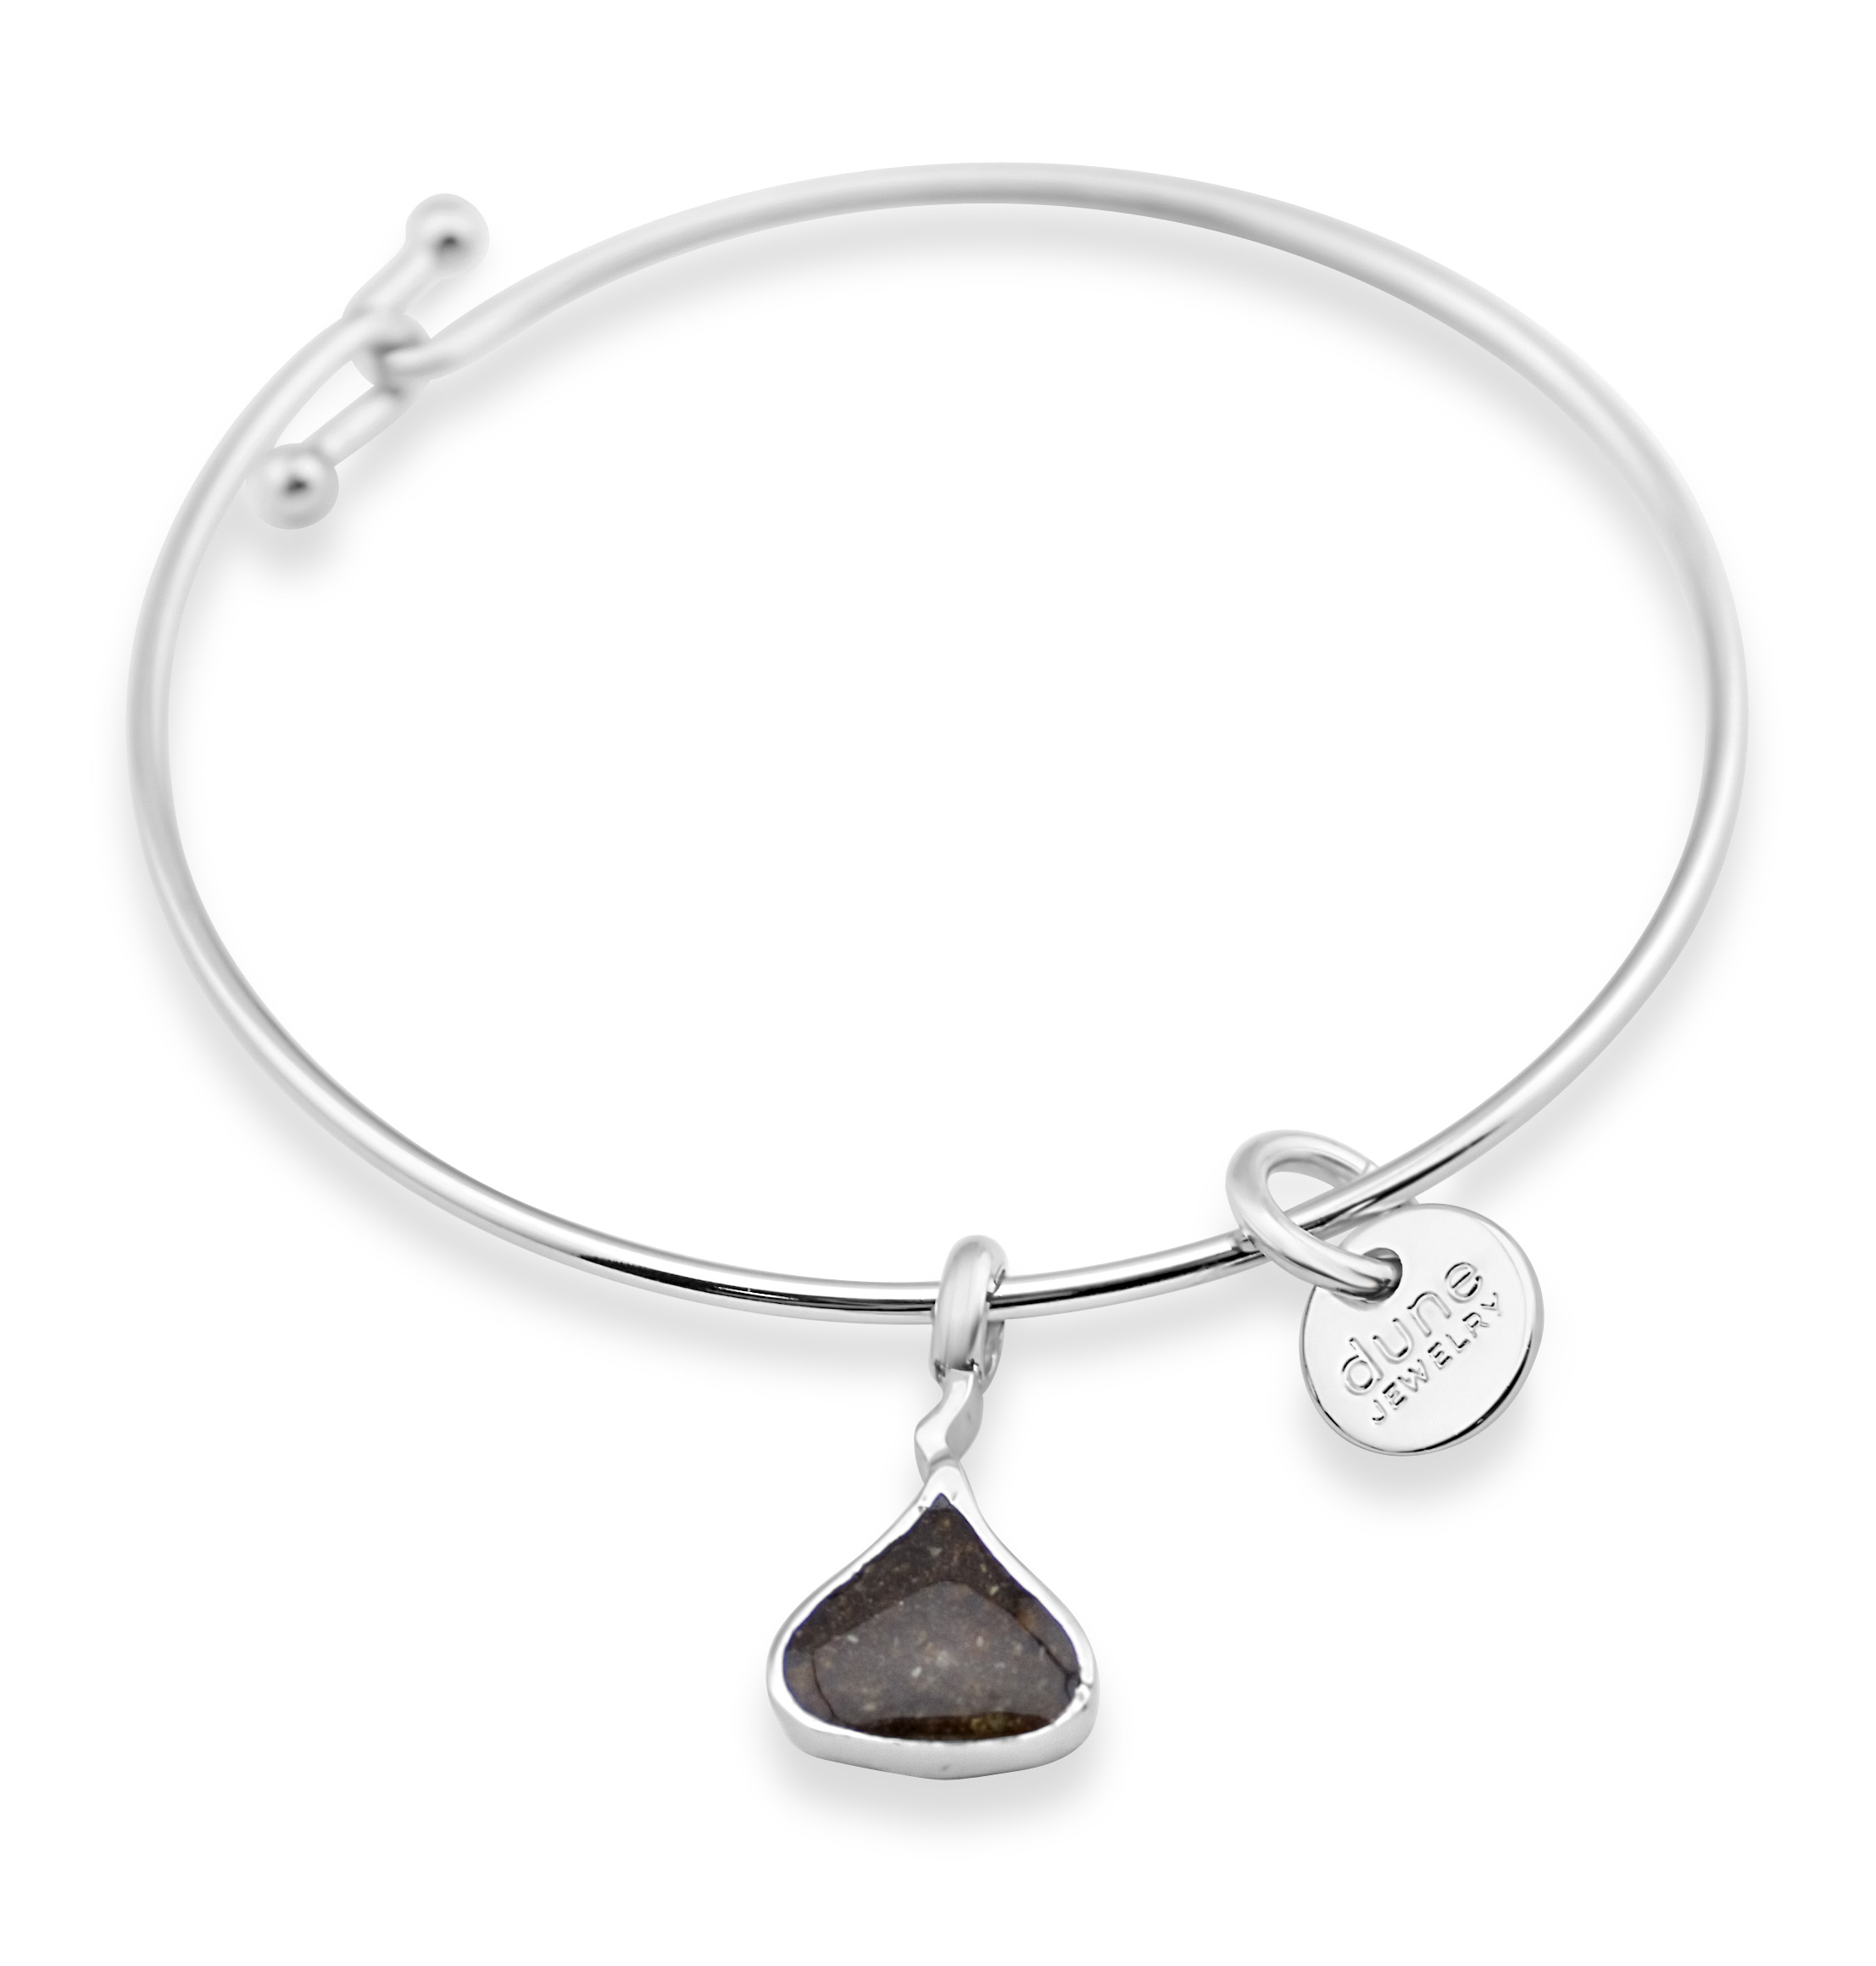 Dune Jewelry Hershey S Crushed Cocoa Bean Bangle